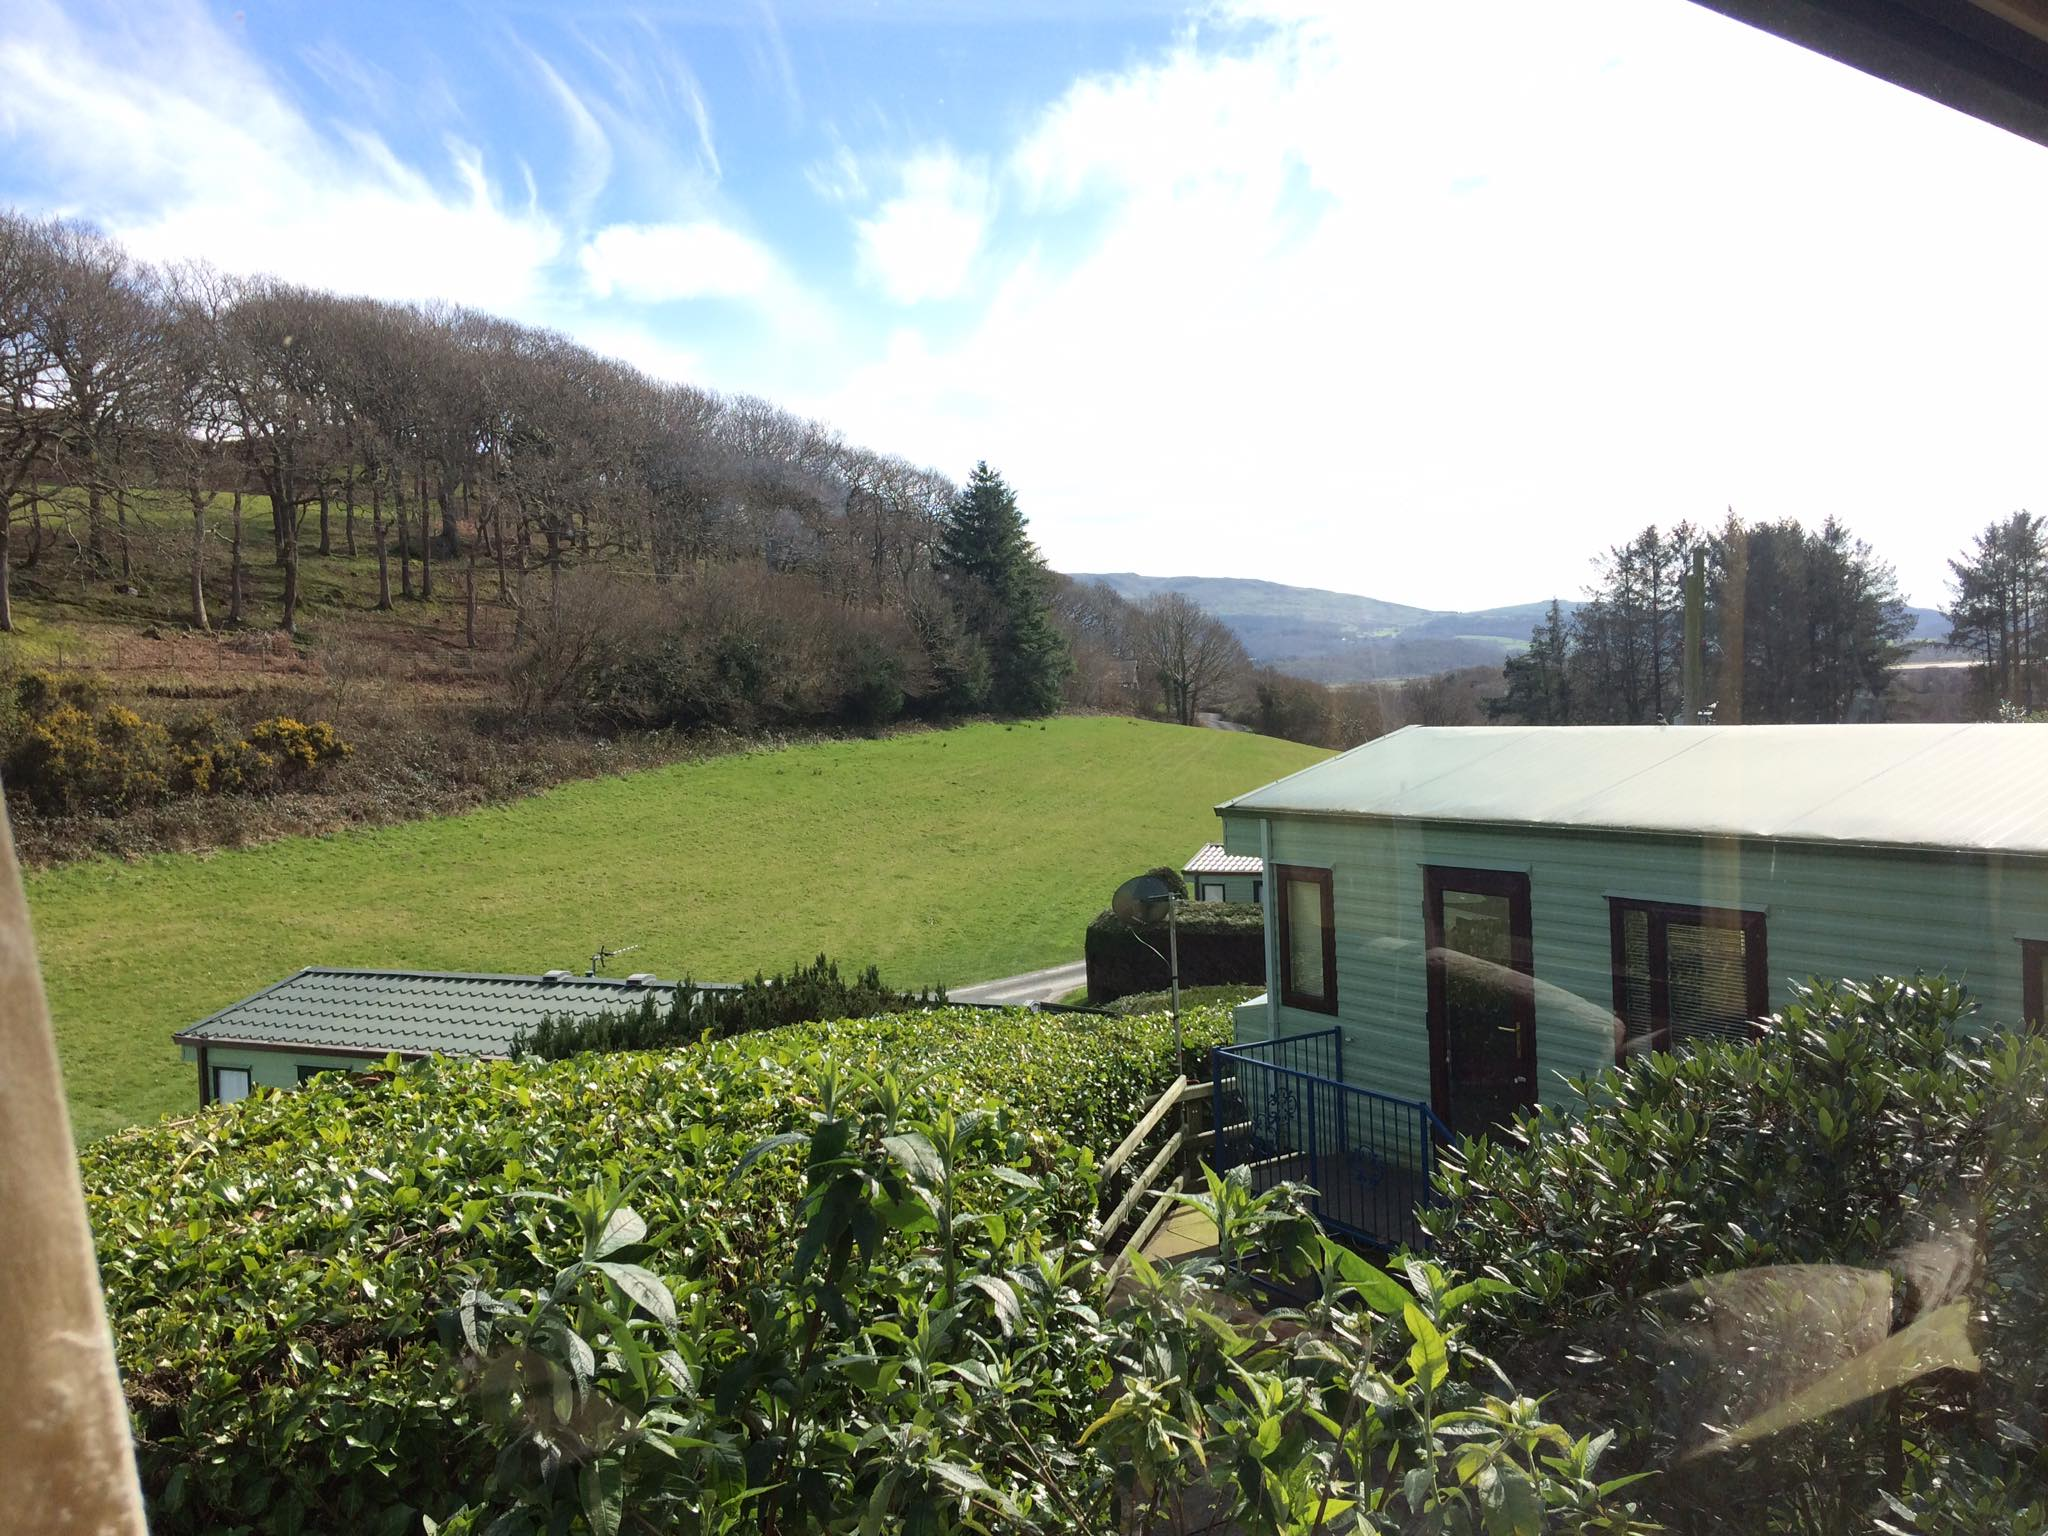 Static Caravan view of Dyfi Valley